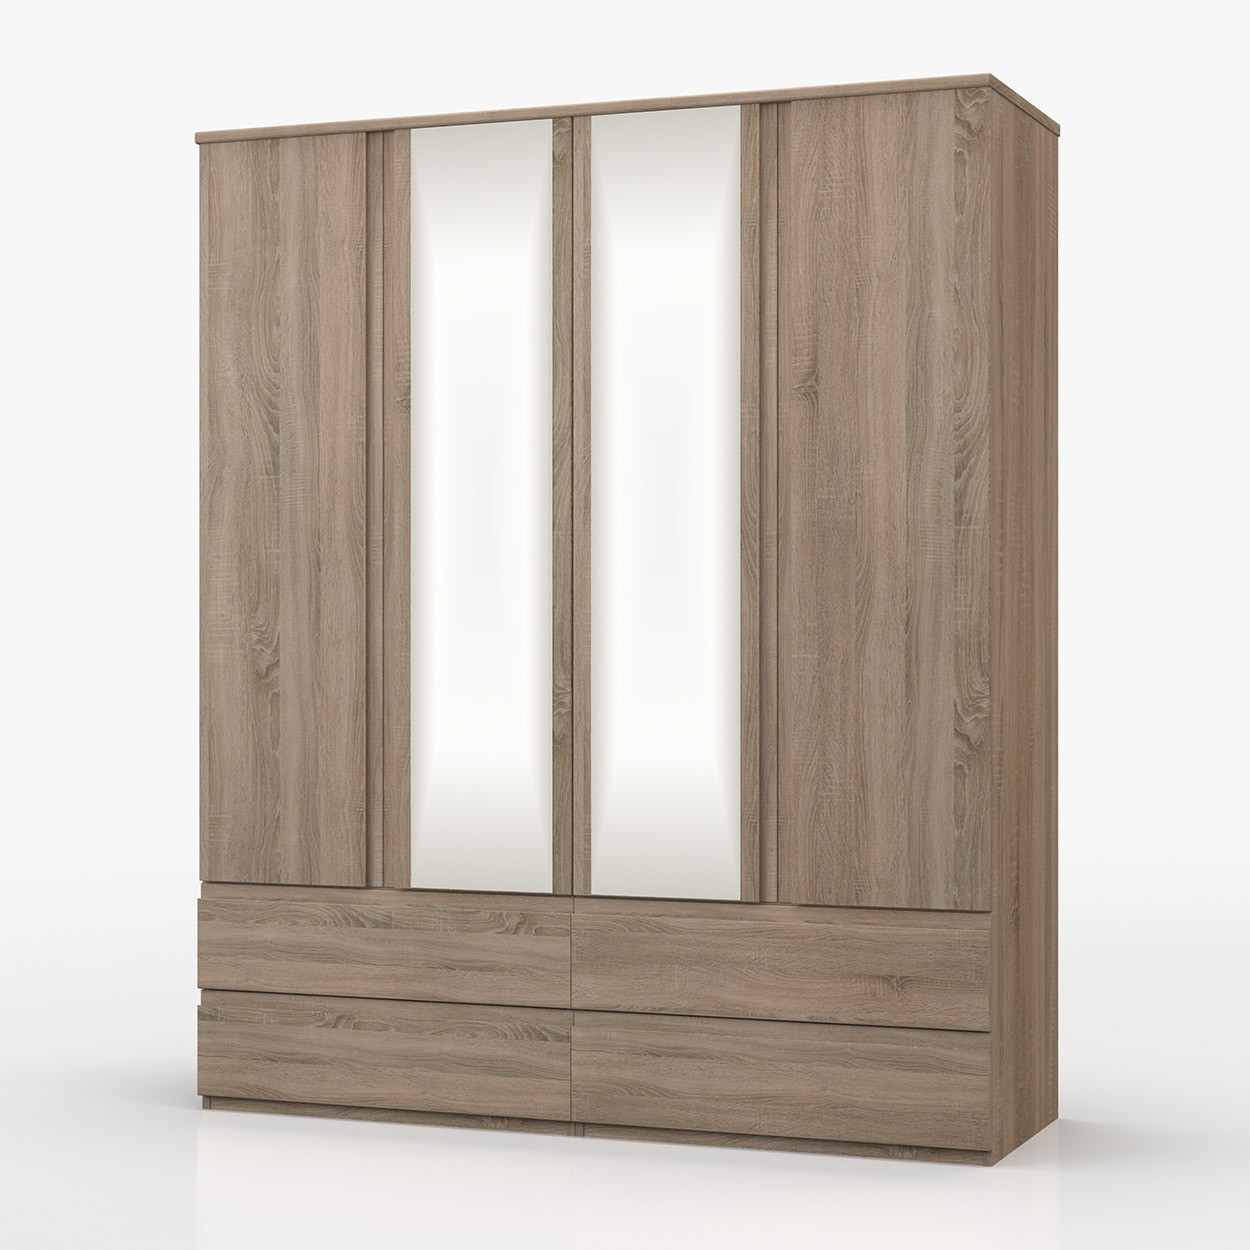 Avenue Truffle Oak 4 Door Combi Wardrobe With Mirror